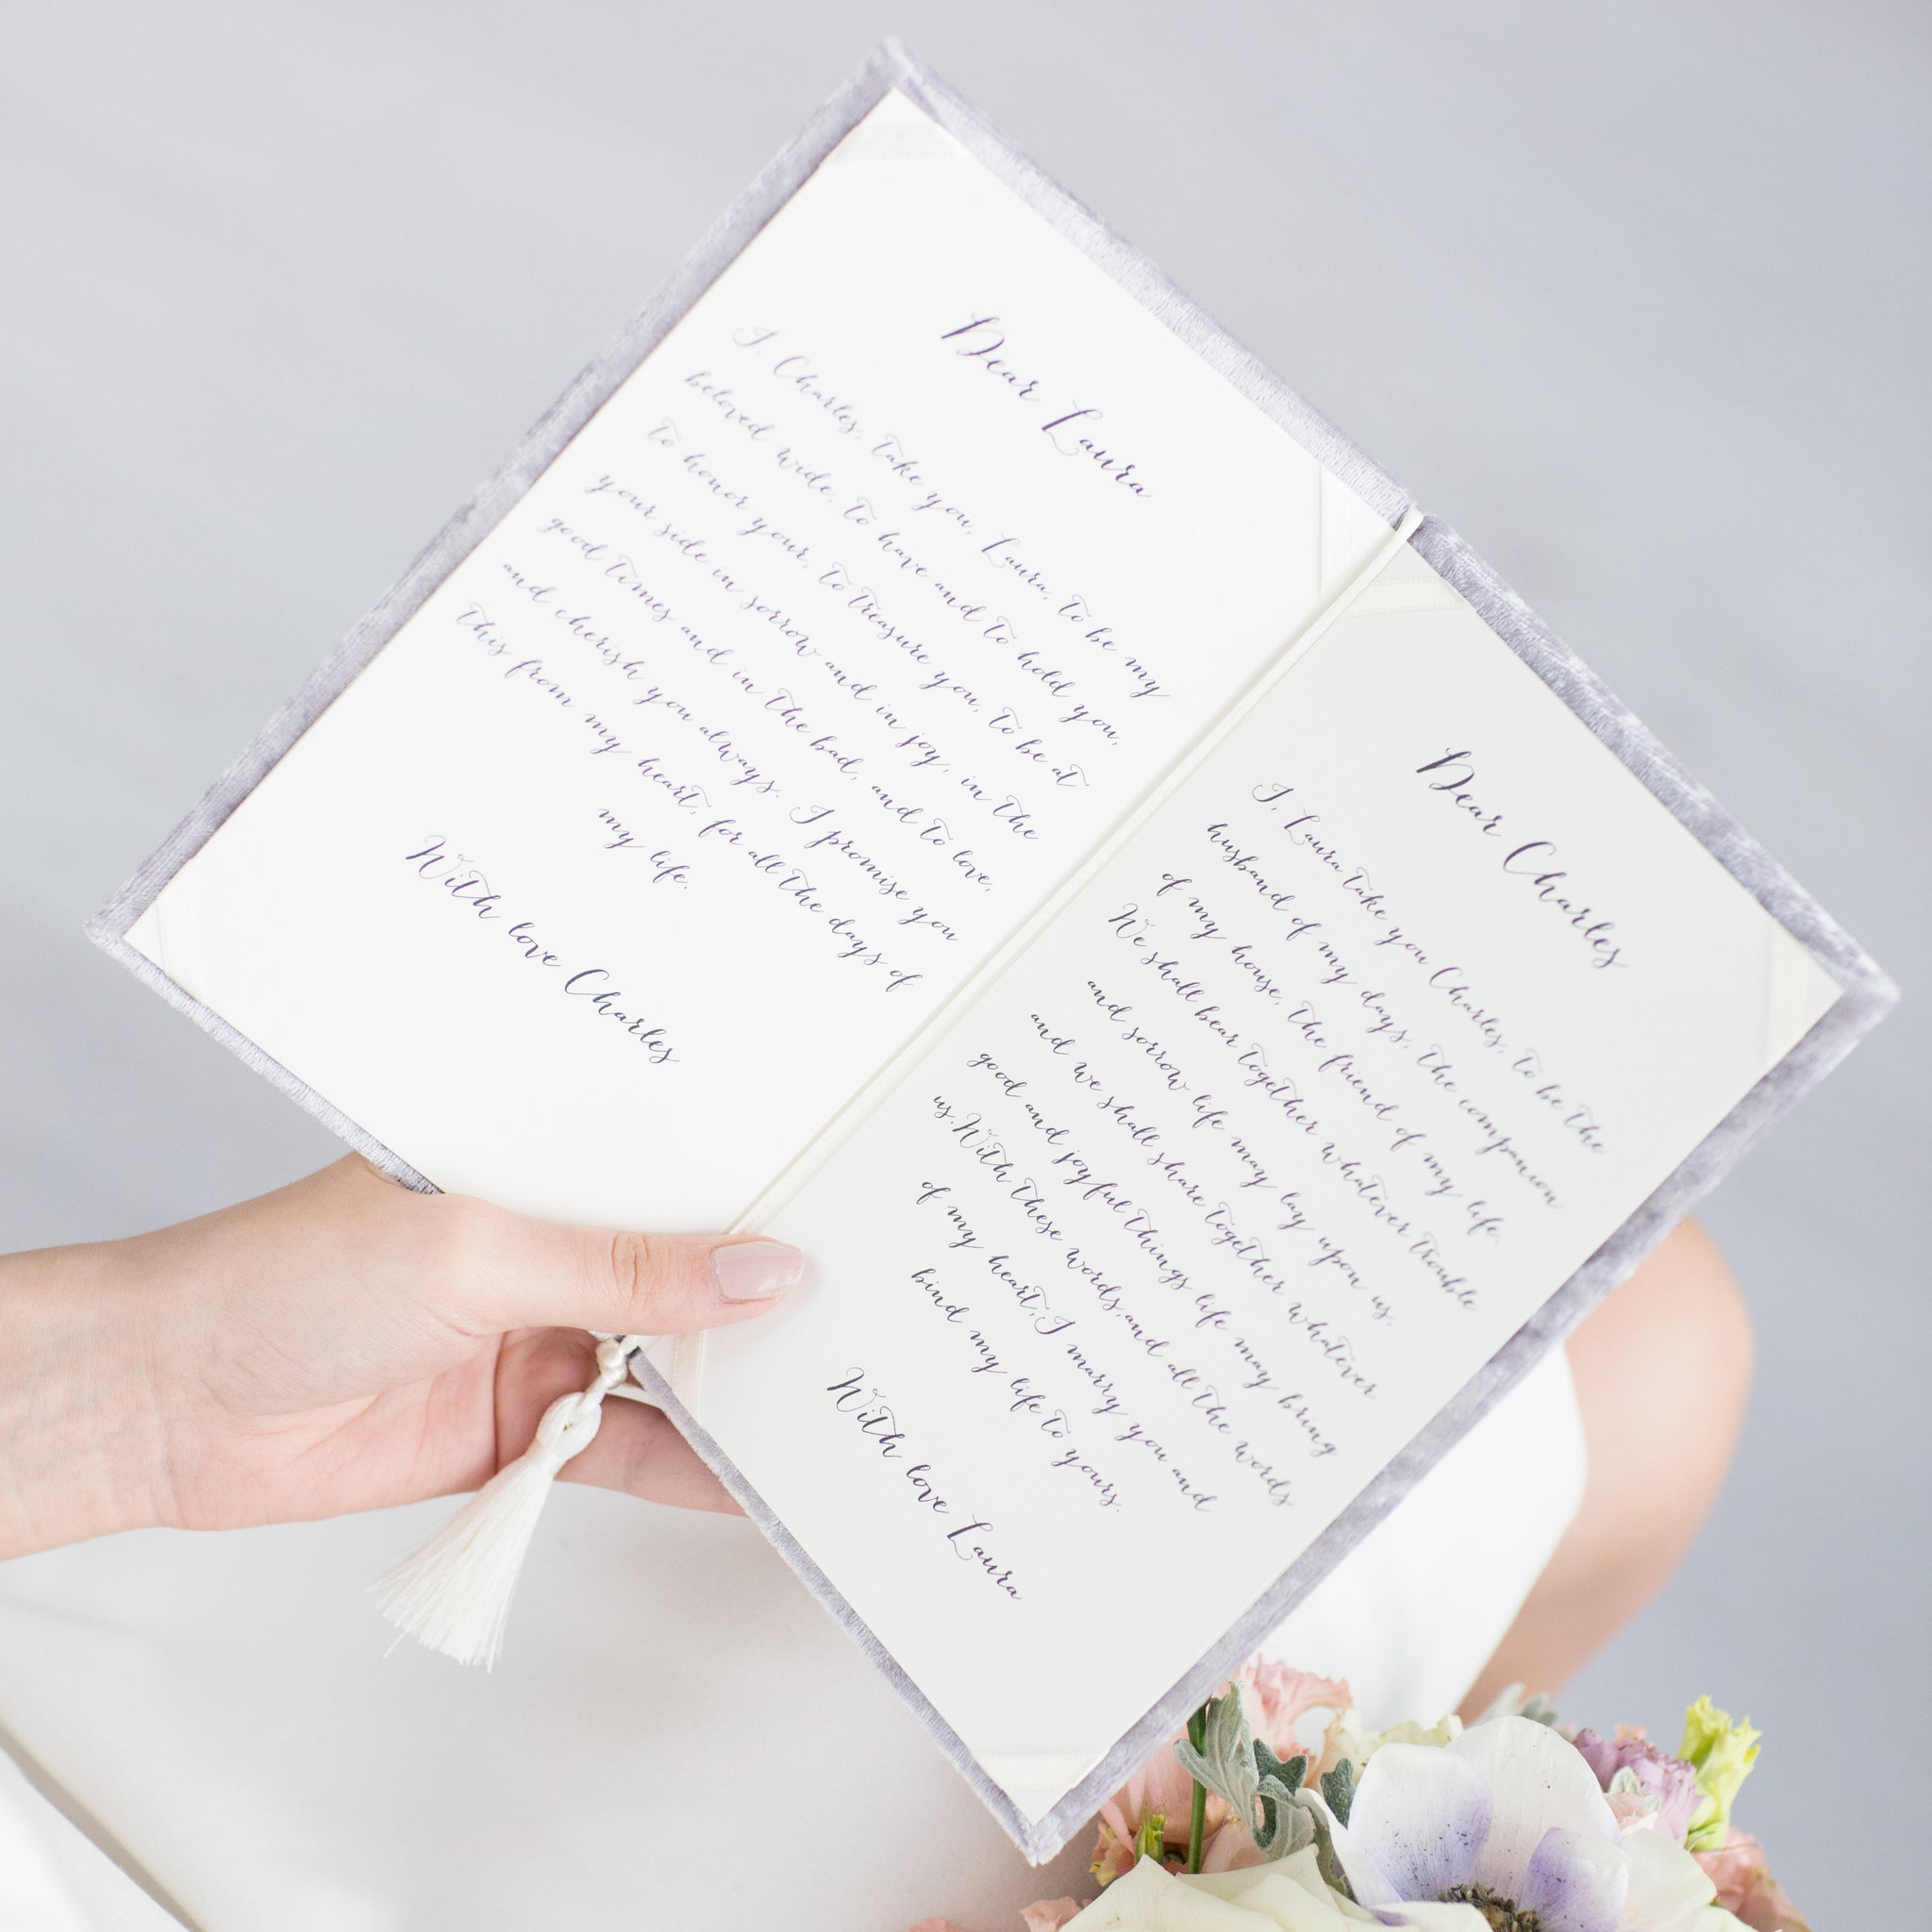 Gray Wedding Vow Books Velour Keepsake Calligraphy Her Vows Bride and Groom Ceremony - Liumy